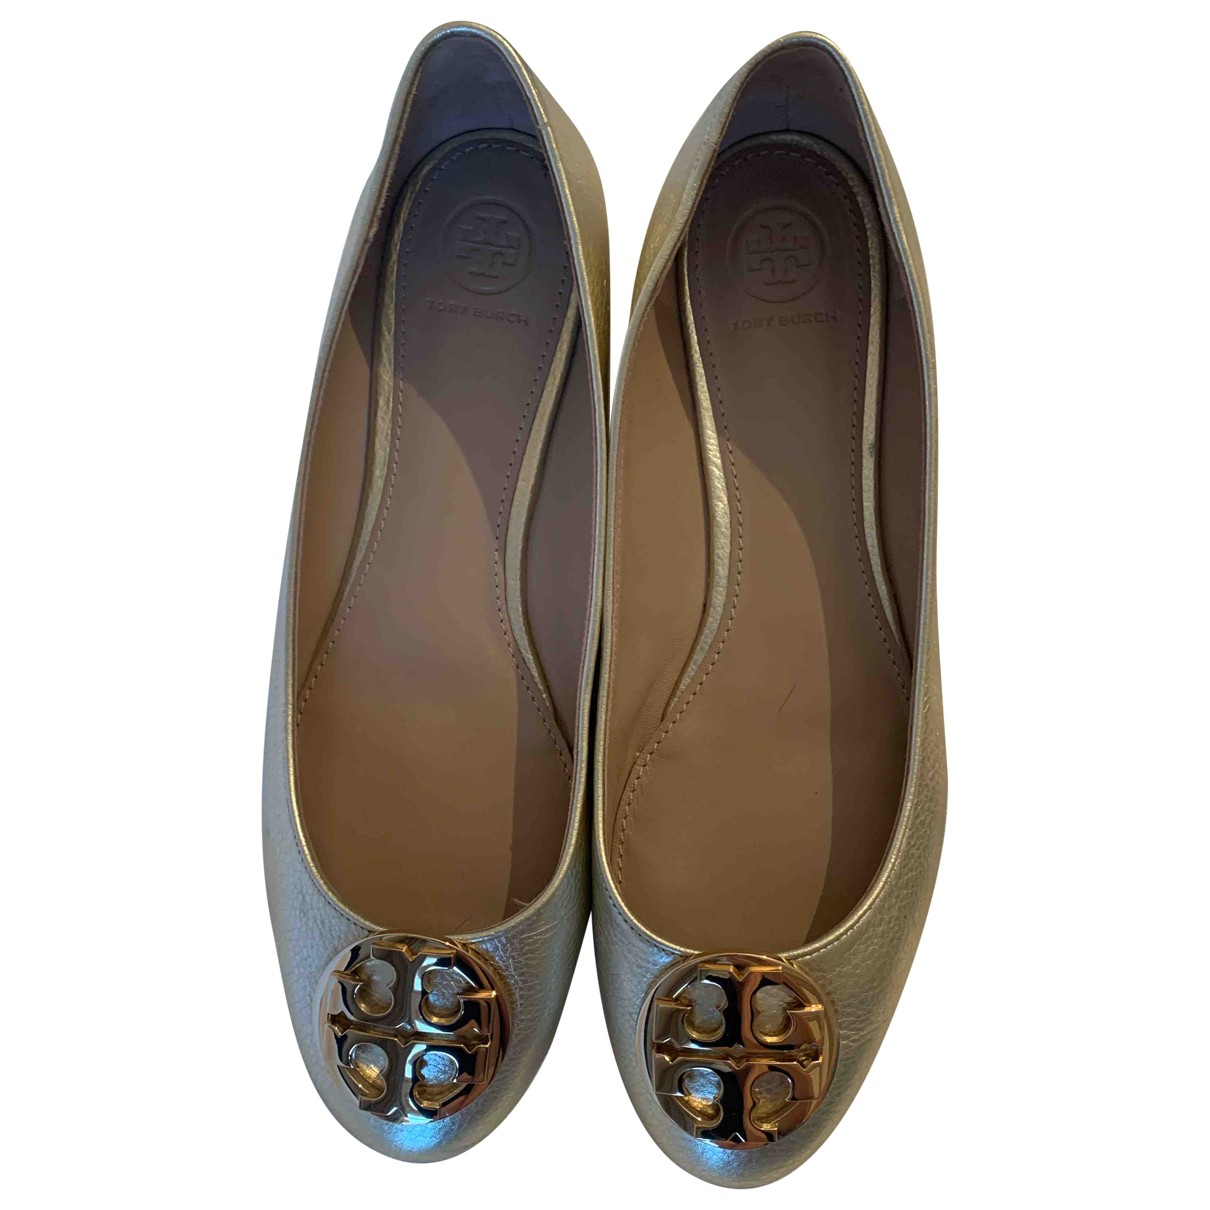 Tory Burch \N Gold Leather Ballet flats for Women 9.5 US